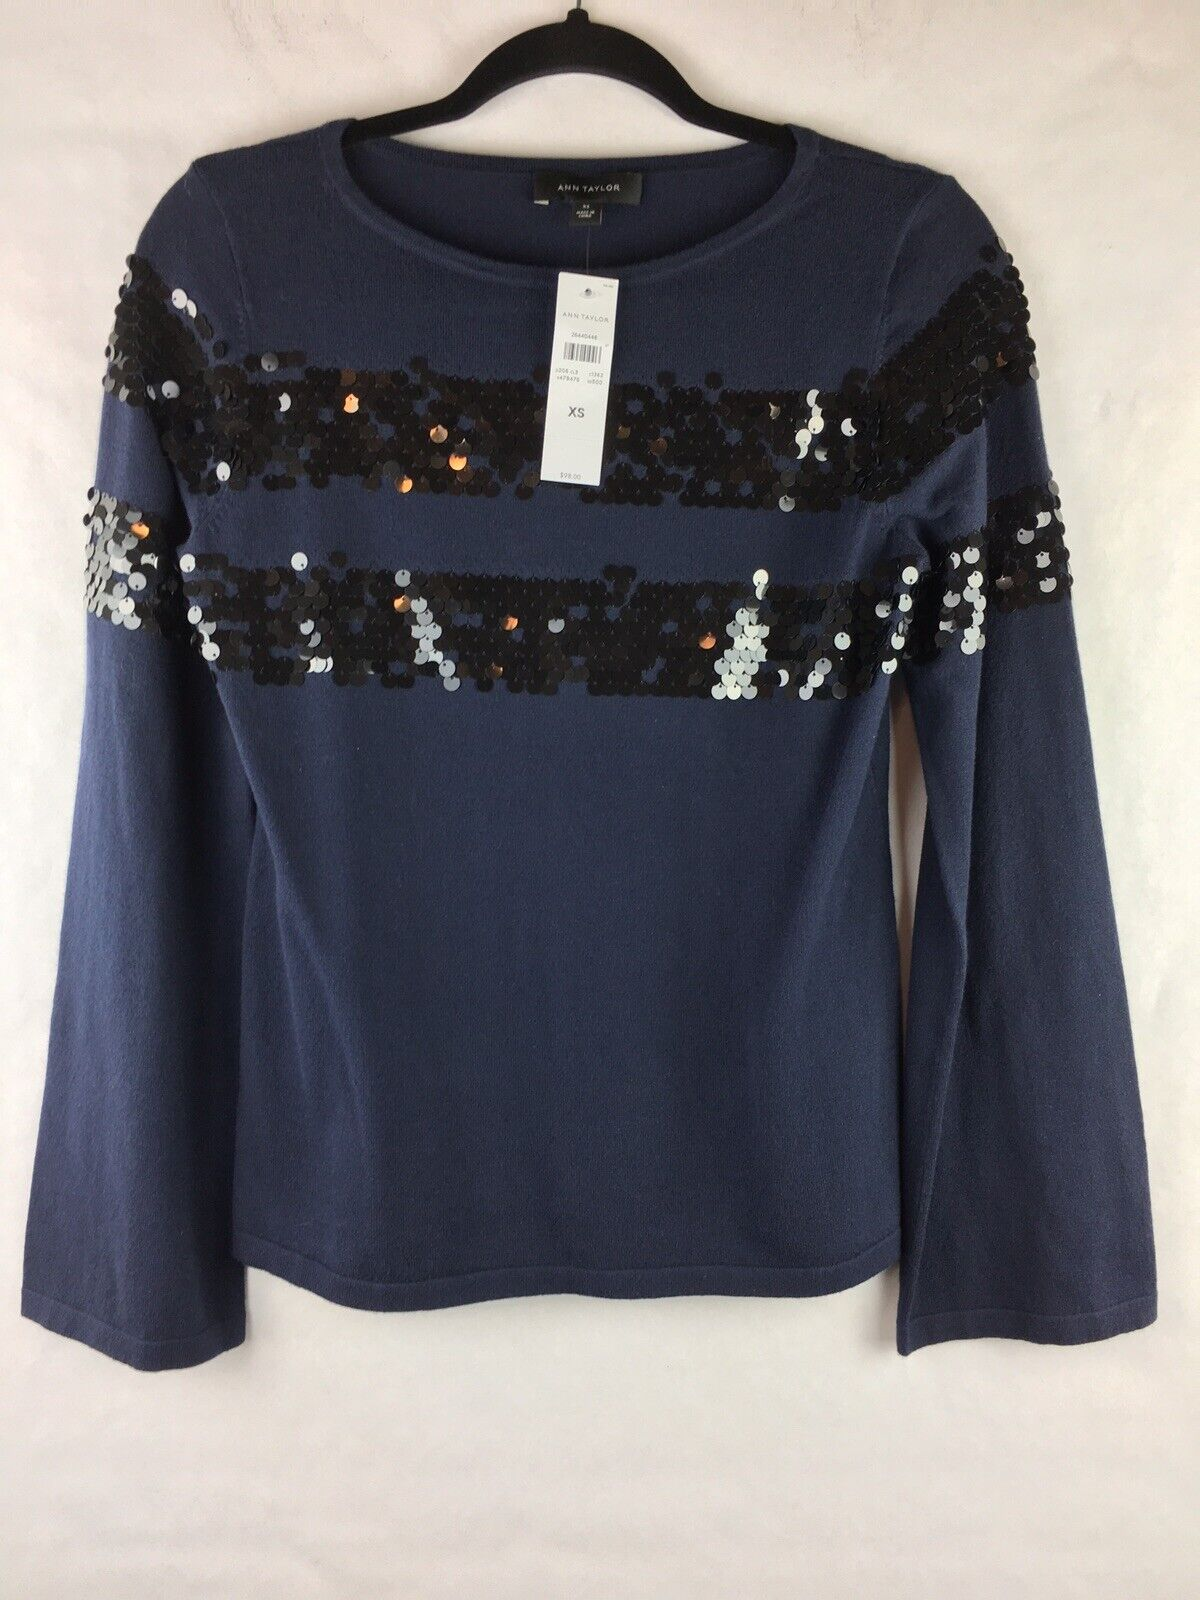 New With Tags  Ann Taylor Women's Size XS Sweater Sequins Lightweight bluee